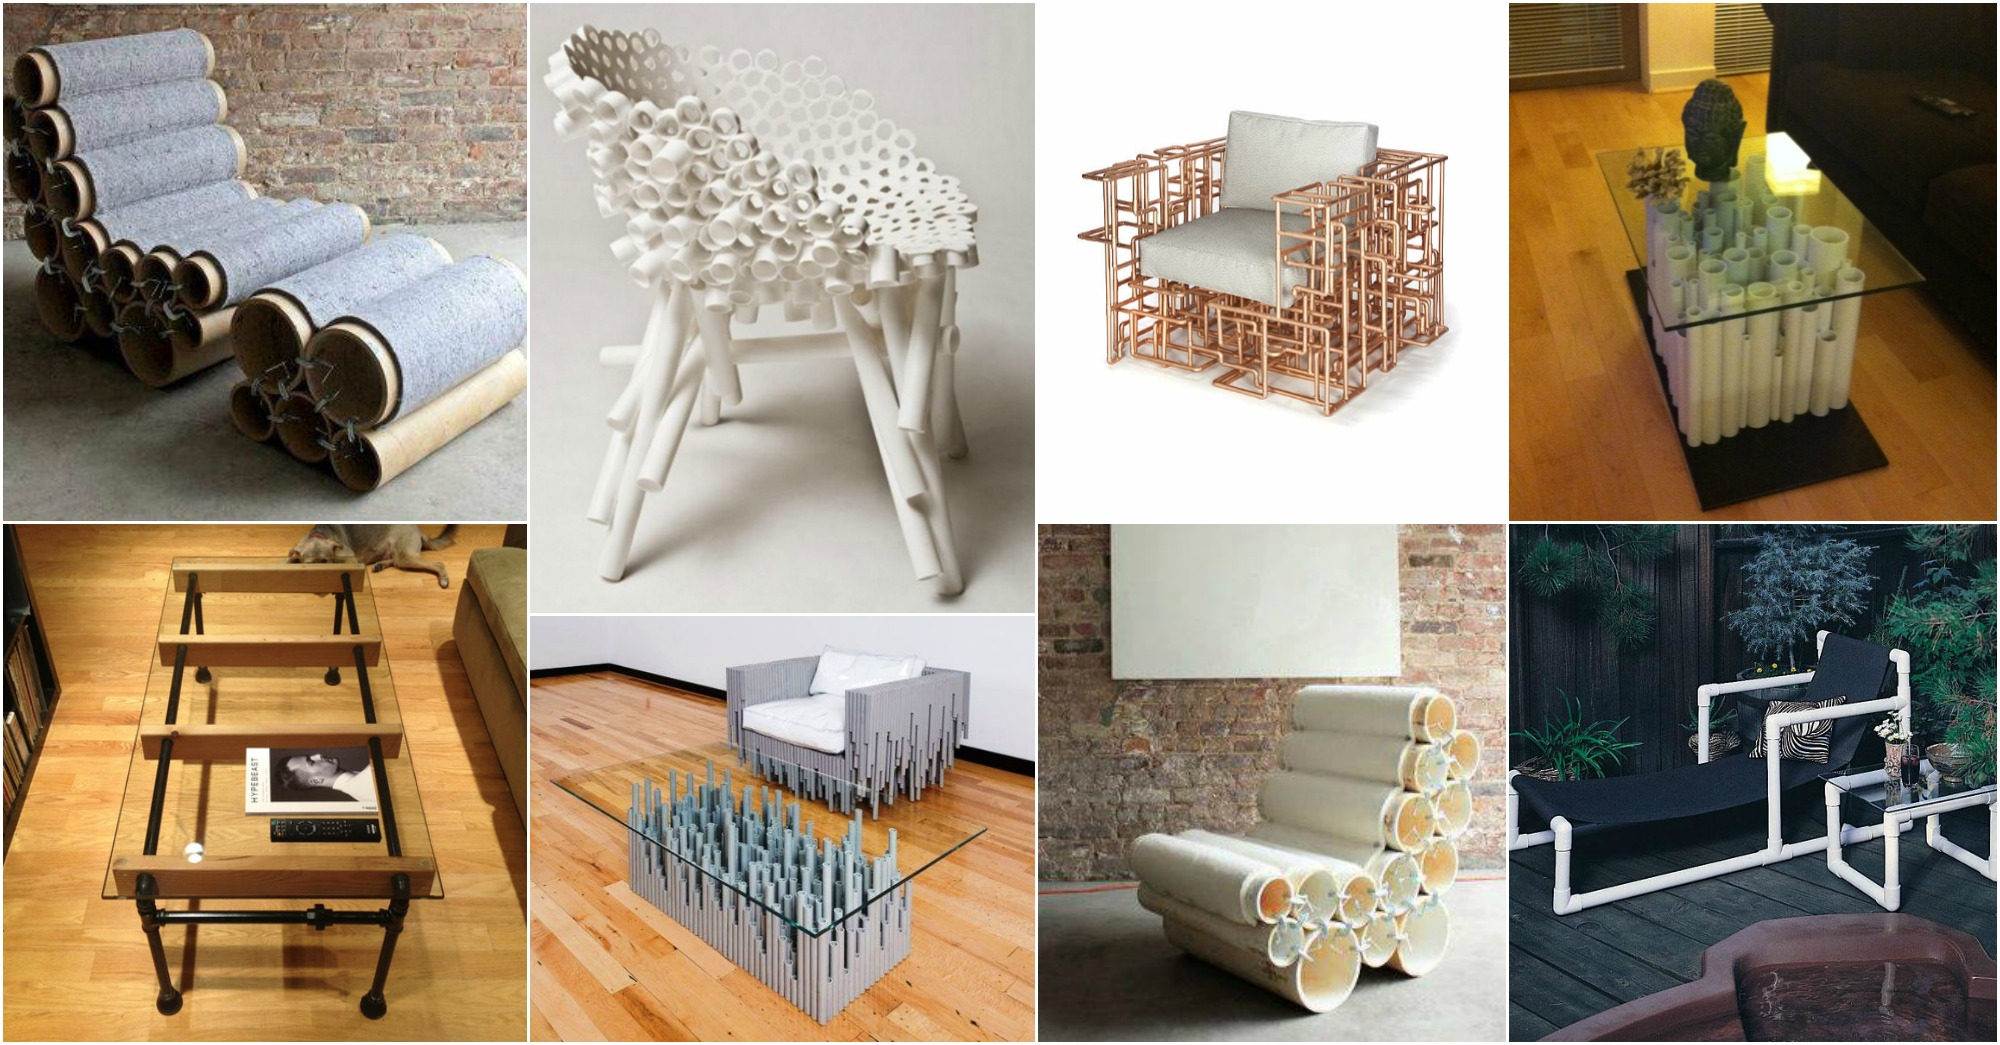 15 ideas de muebles con tuberia pvc que te fascinan for Ideas de muebles